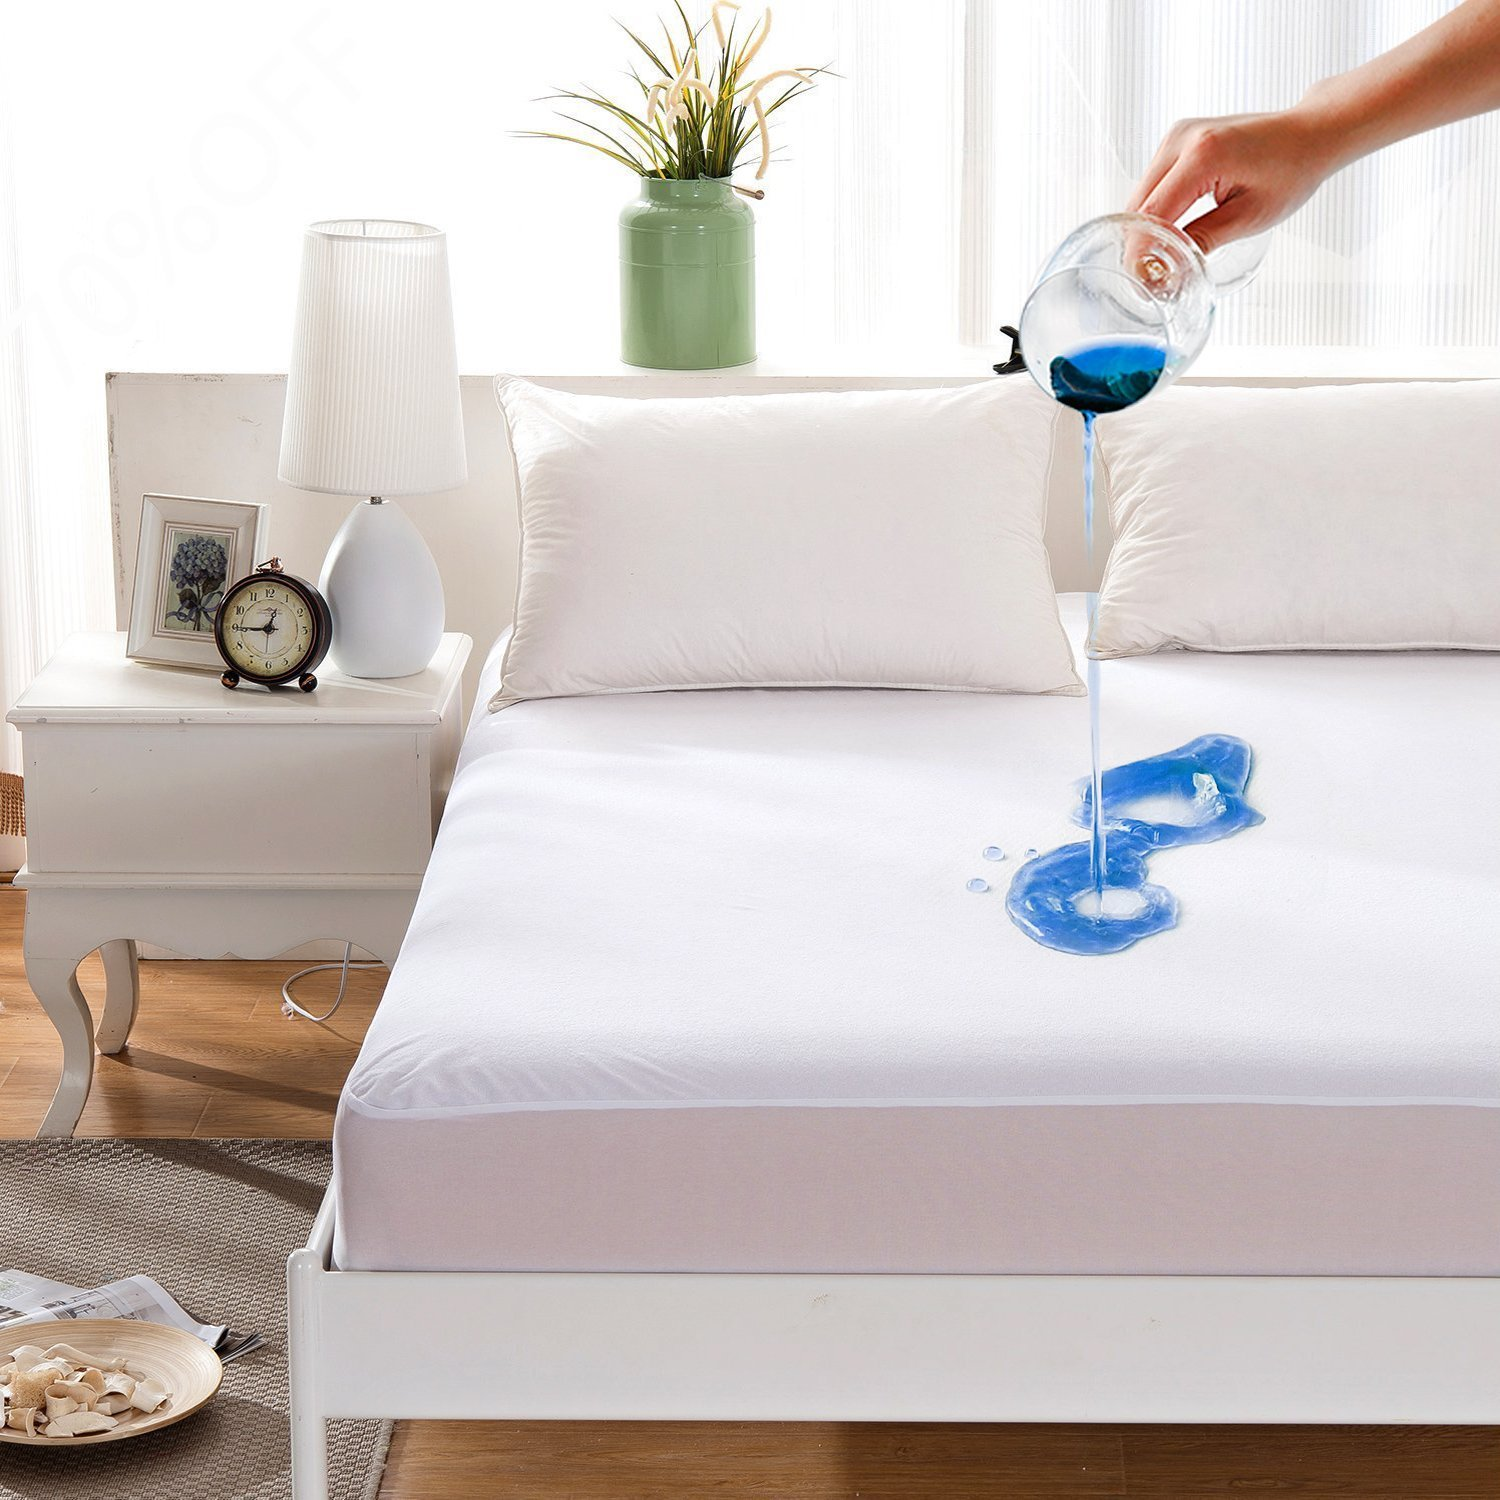 Maevis Bed Waterproof Mattress Protector Cover Pad Fitted 18 Inches Deep Pocket Premium Washable Vinyl Free - California King